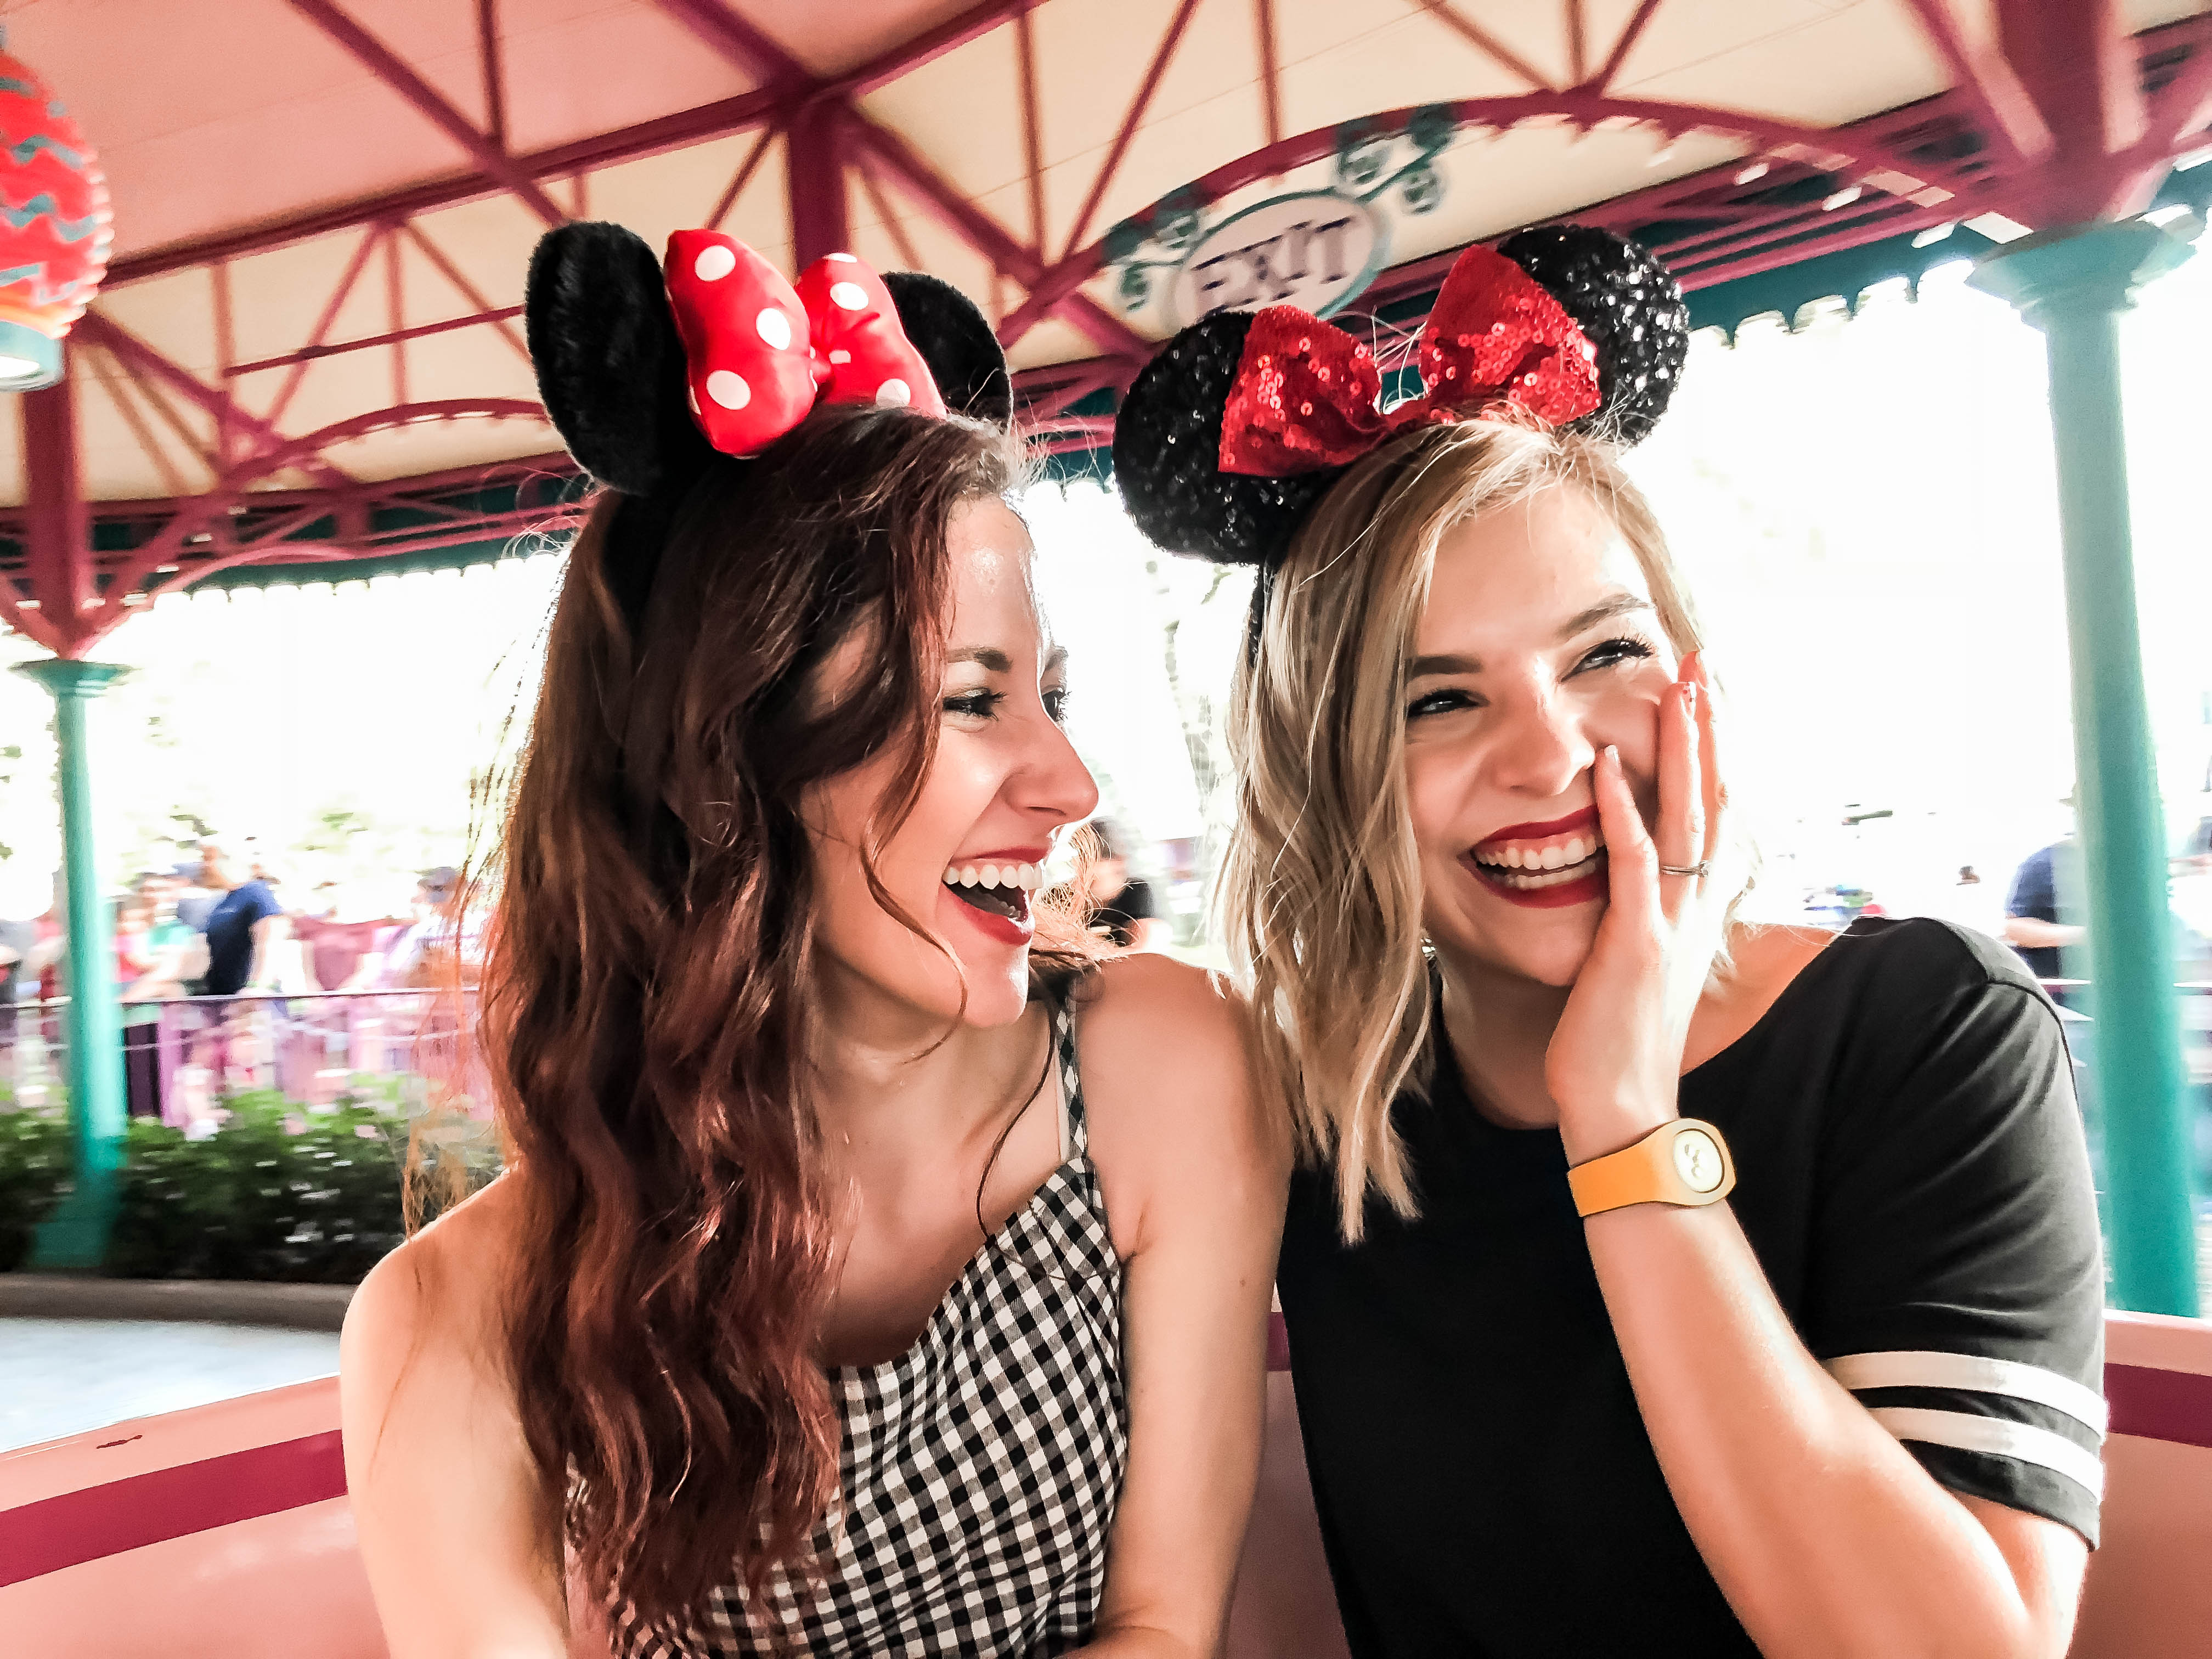 #AdultsAtDisney - Disney World for Adults - What to do, eat, and ride as a grown-up! - 12 Ways to Become a More Outgoing Person by popular Philadelphia lifestyle blogger Coming Up Roses